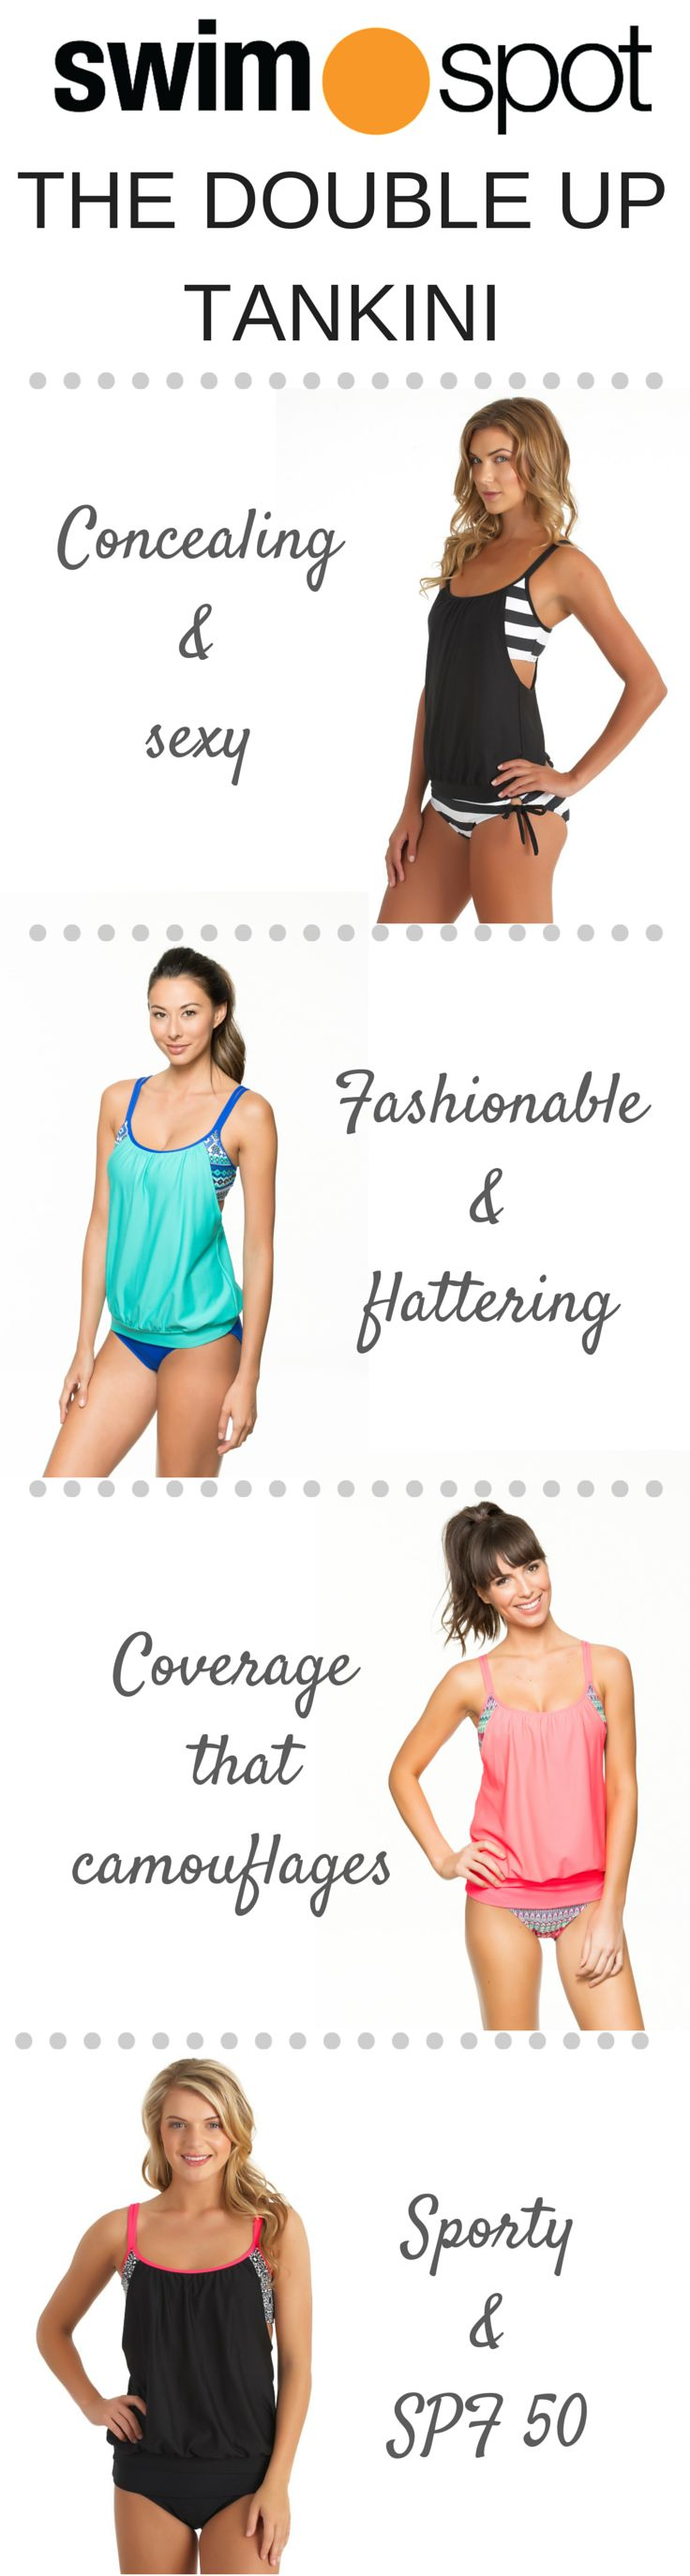 SwimSpot's BEST SELLING tankini, The Double Up, comes in a wide array of colors & prints that are perfect for mixing & matching!